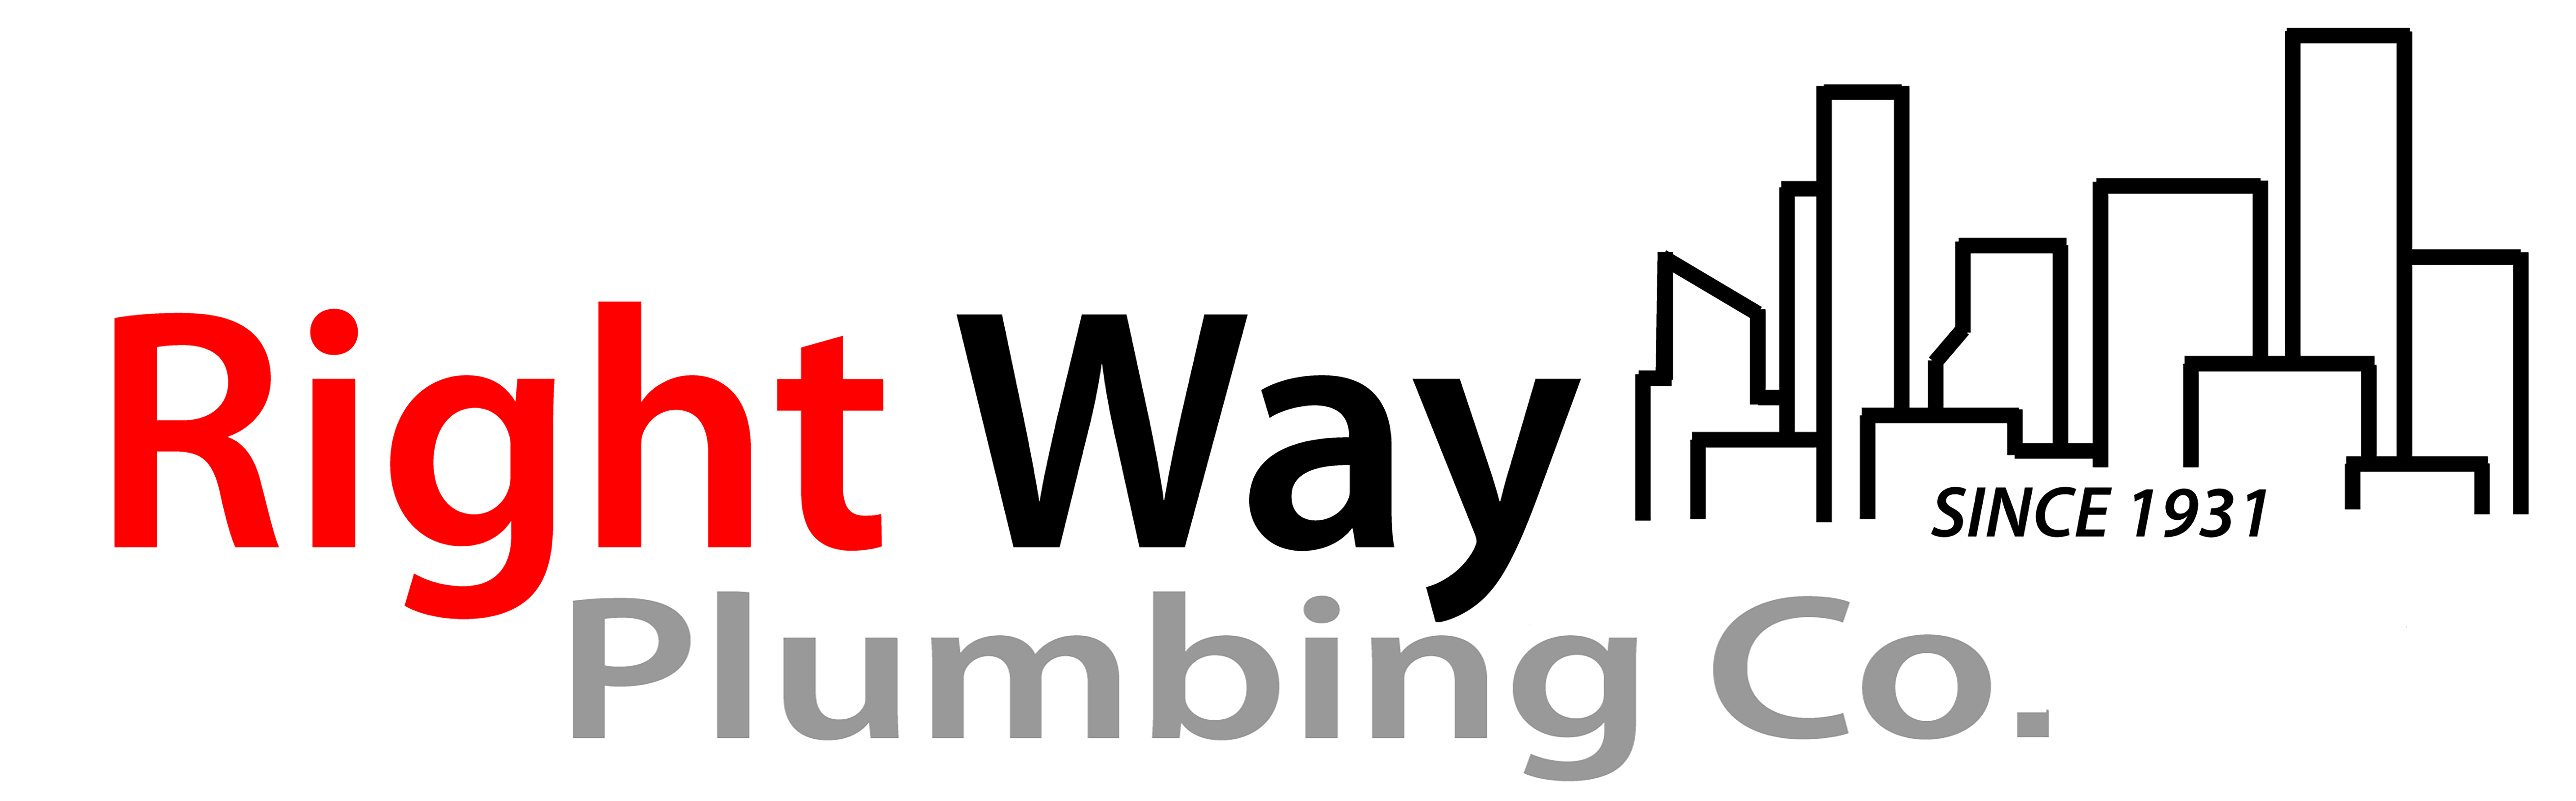 Right Way Plumbing Co